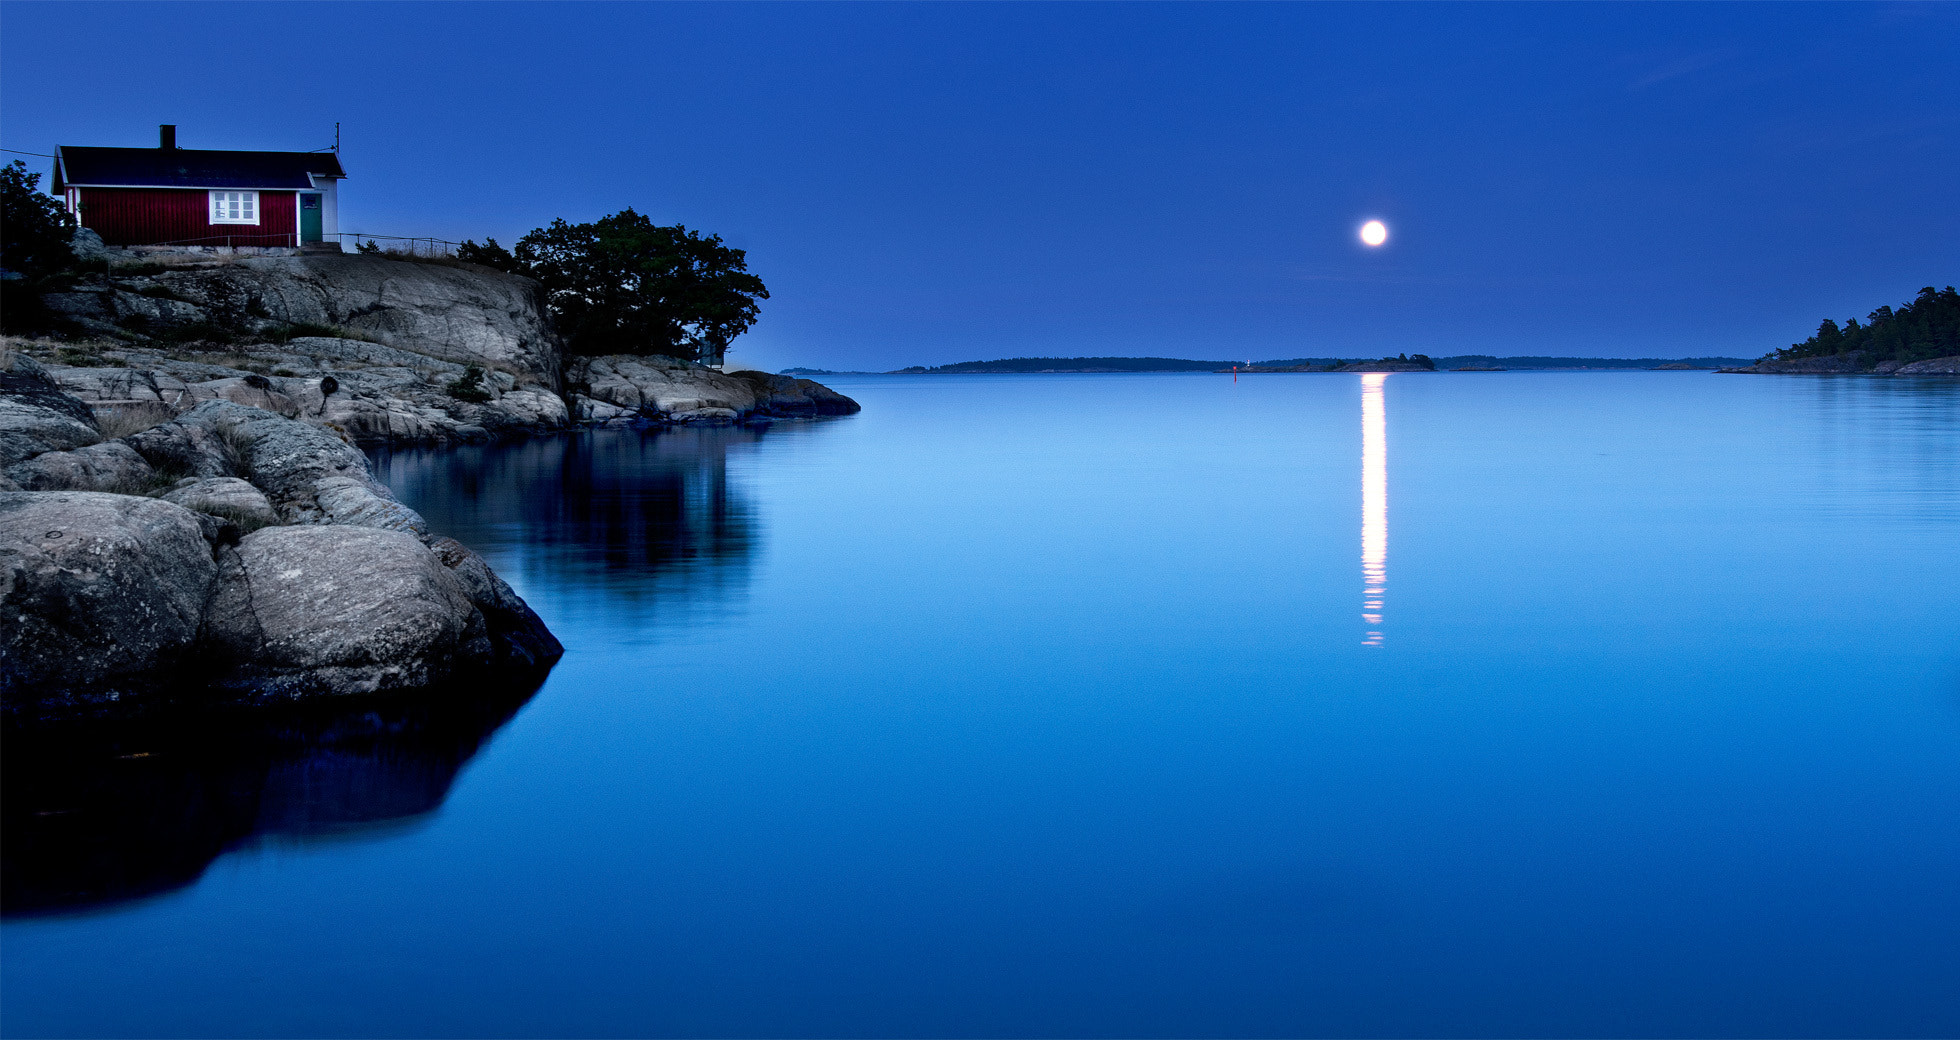 Photograph Moon over the Archipelago by Mikael Sundberg on 500px